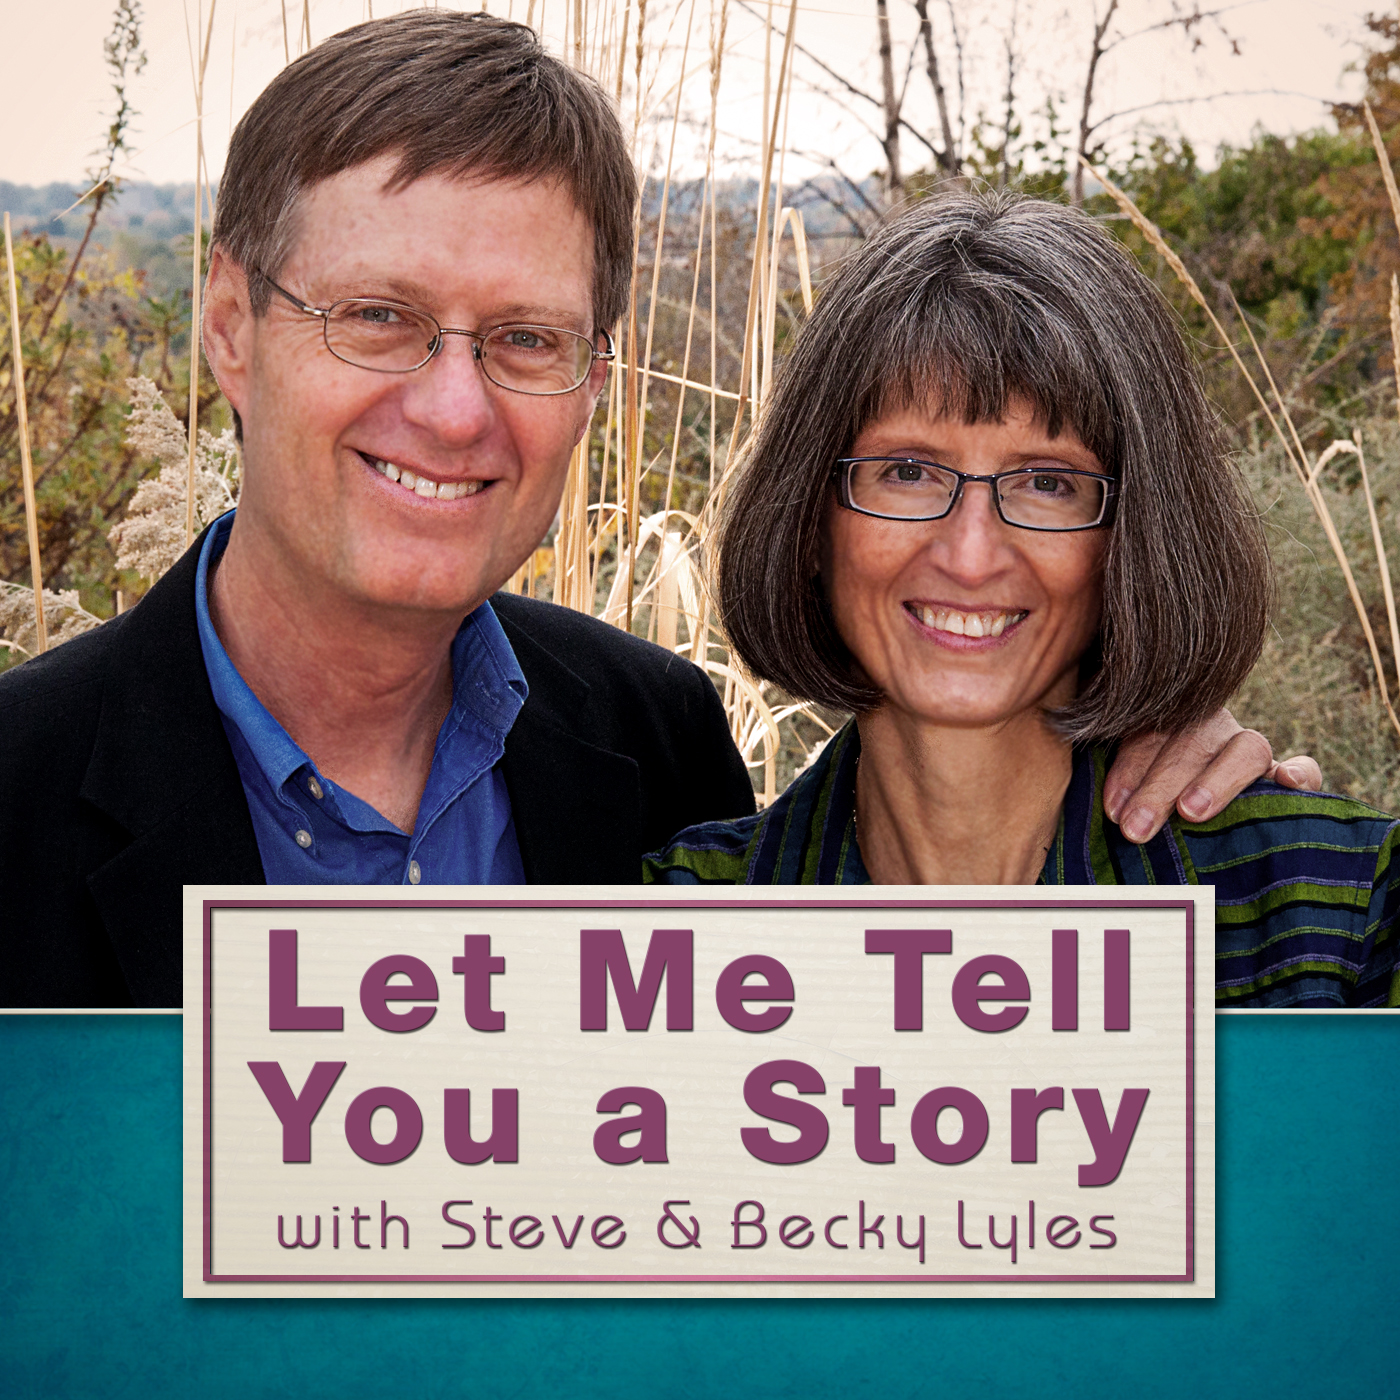 Let Me Tell You a Story Podcast #1 with Steve & Becky Lyles